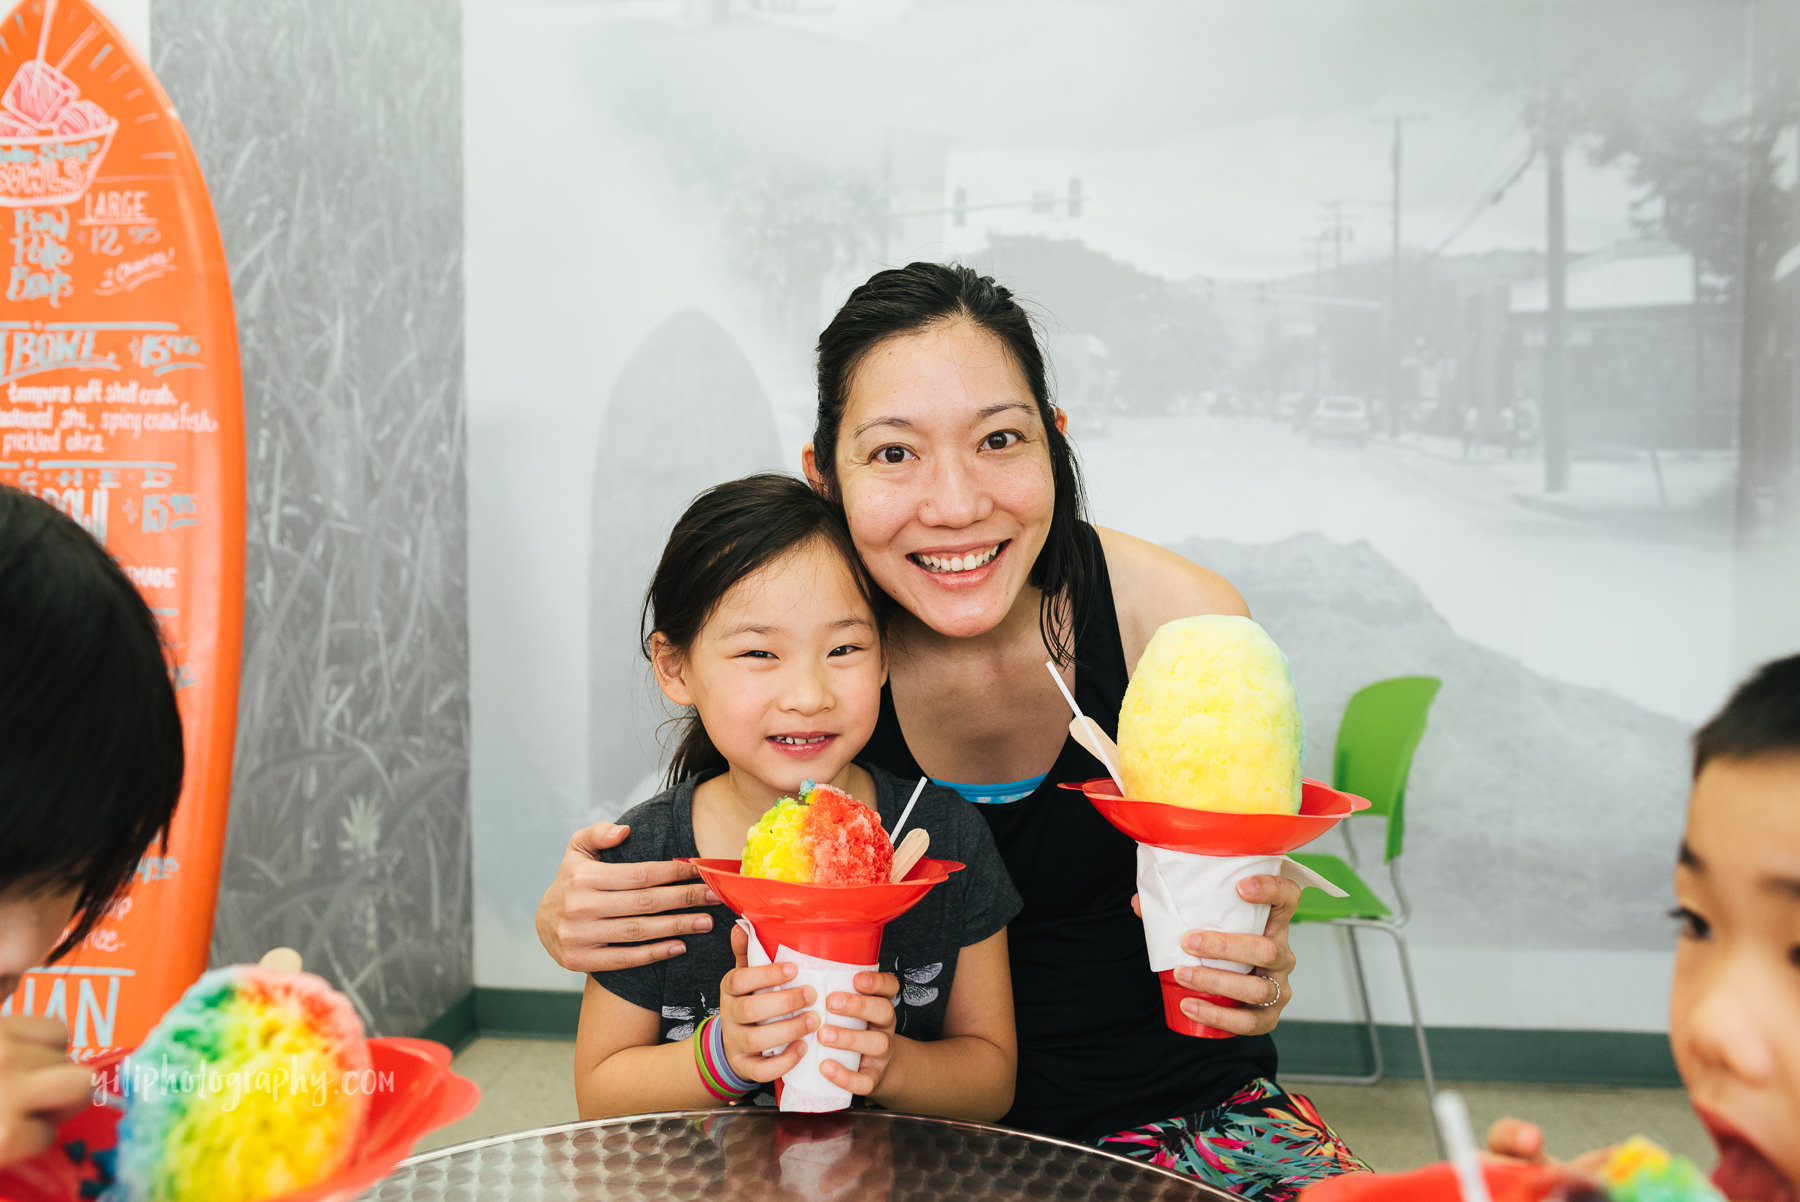 mom and daughter posing with shave ice